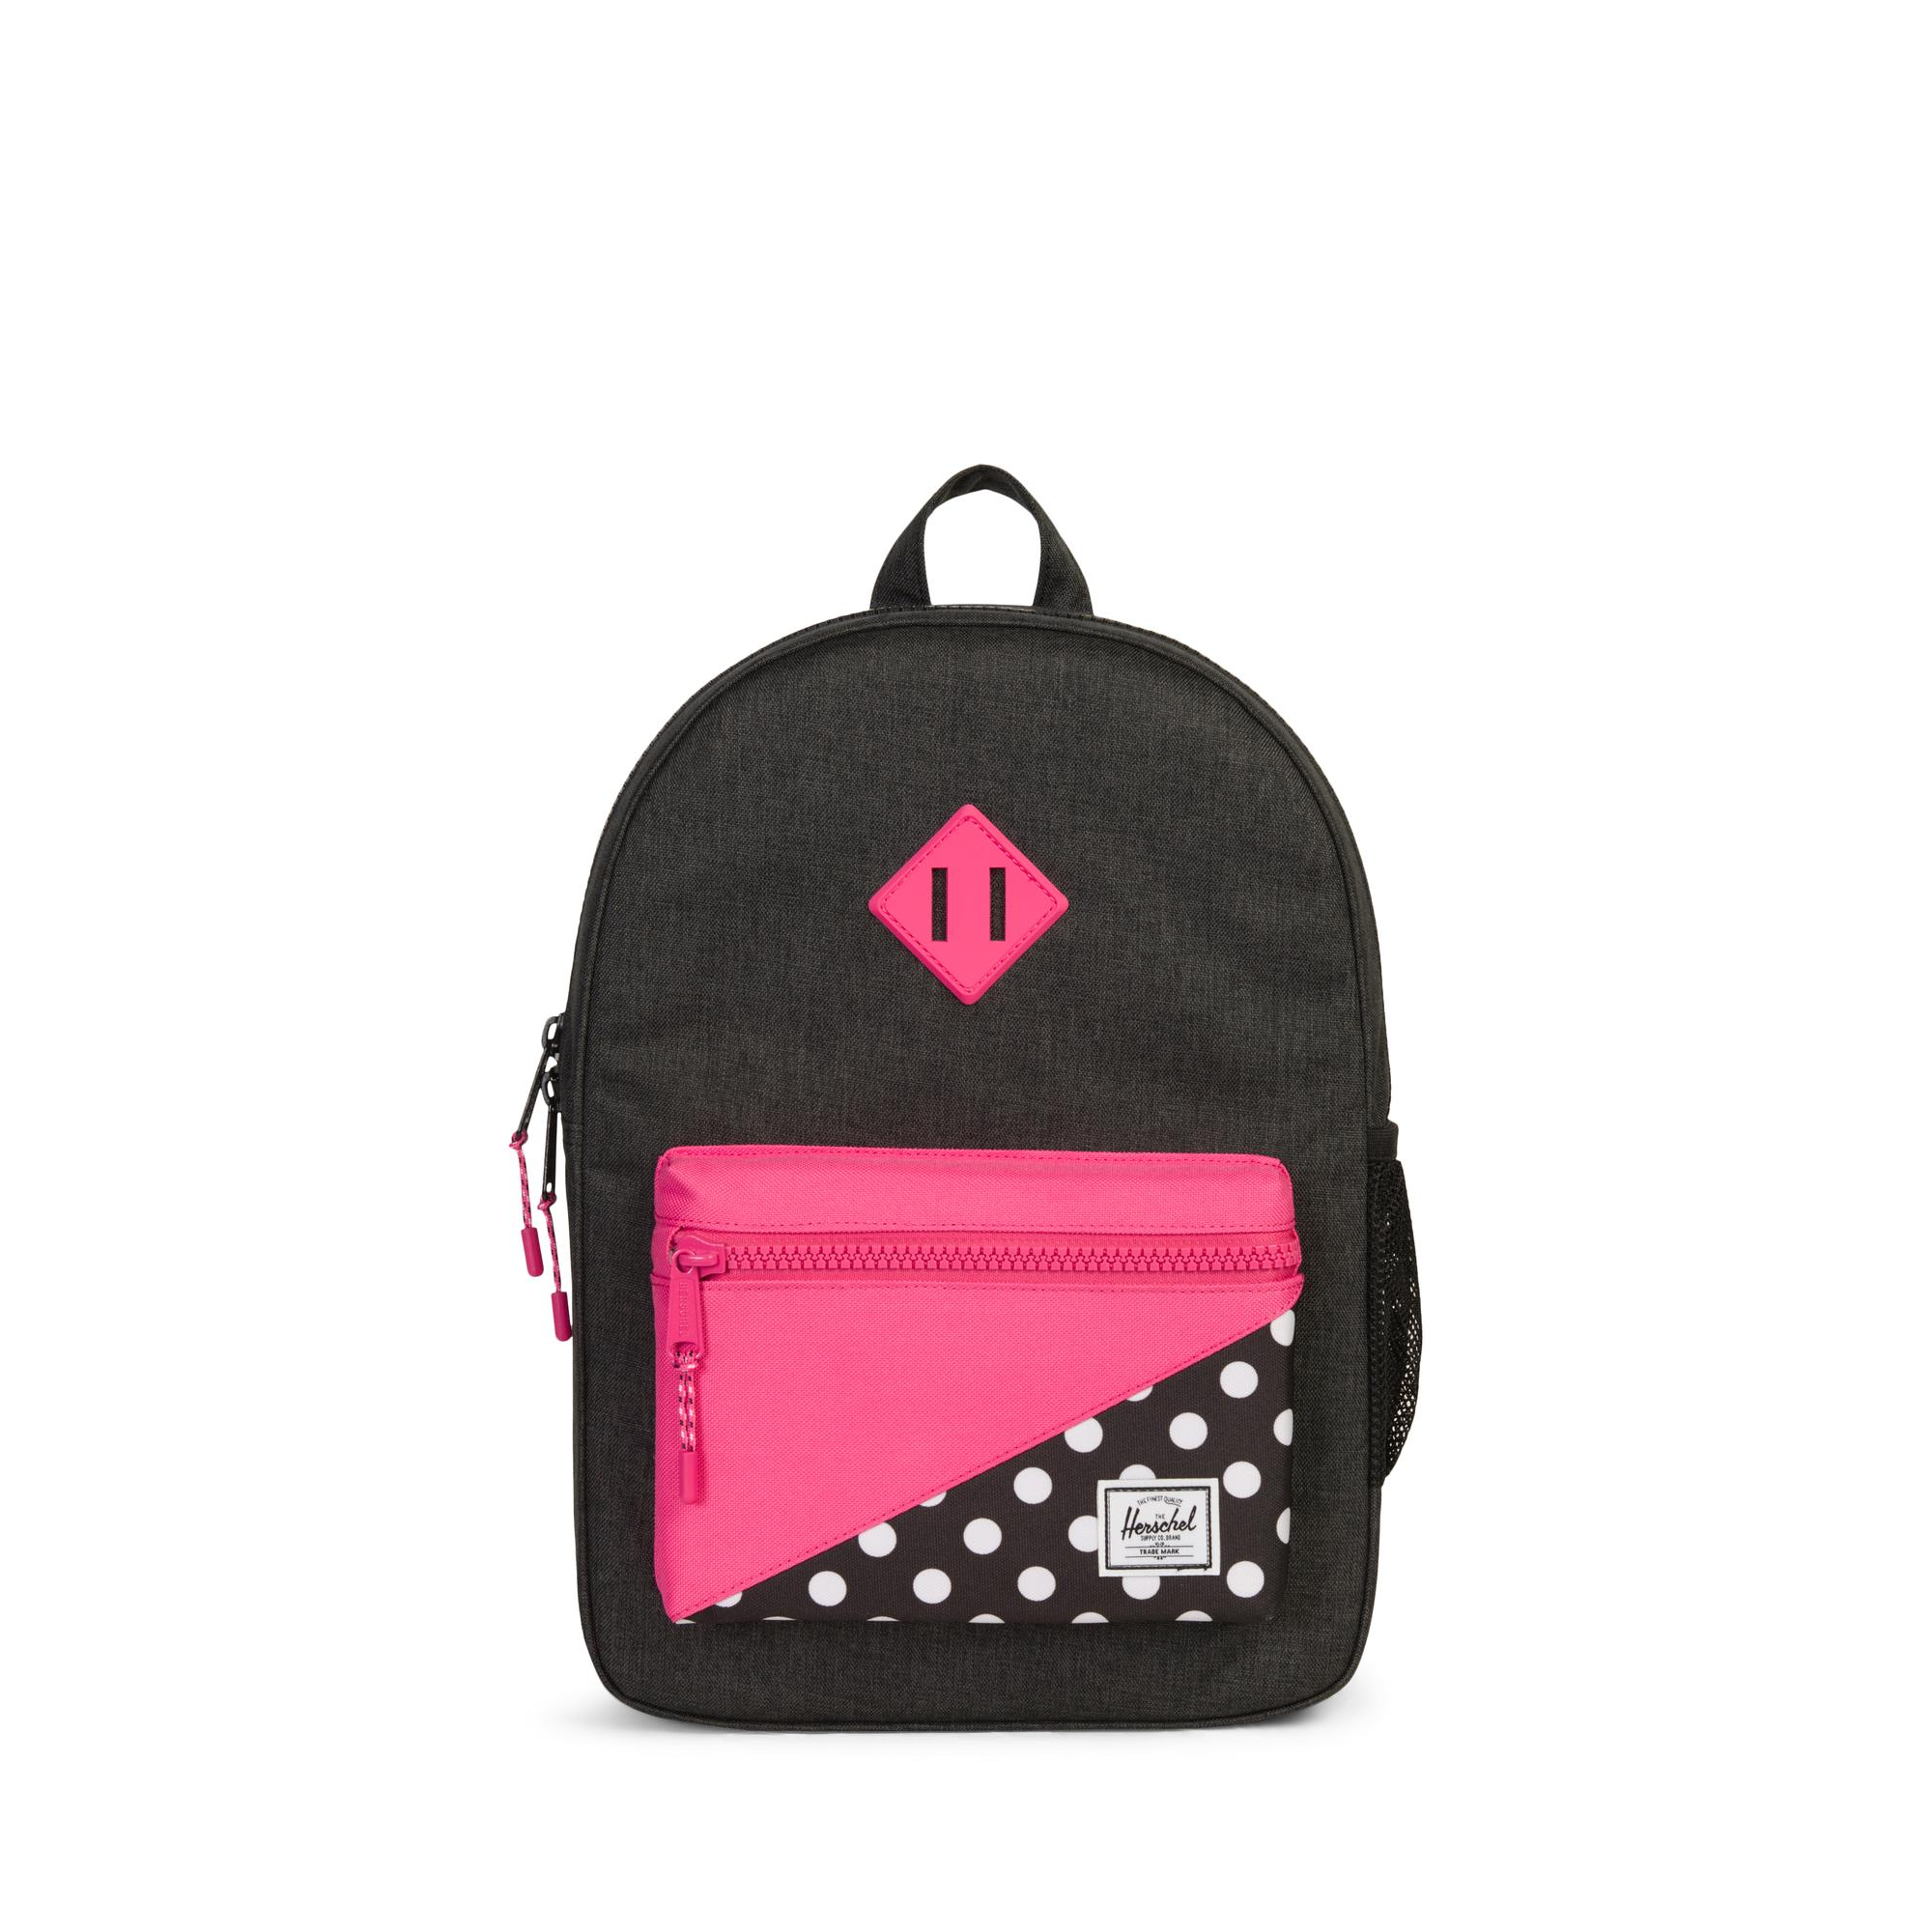 c0a566f5a60 Heritage Backpack Youth